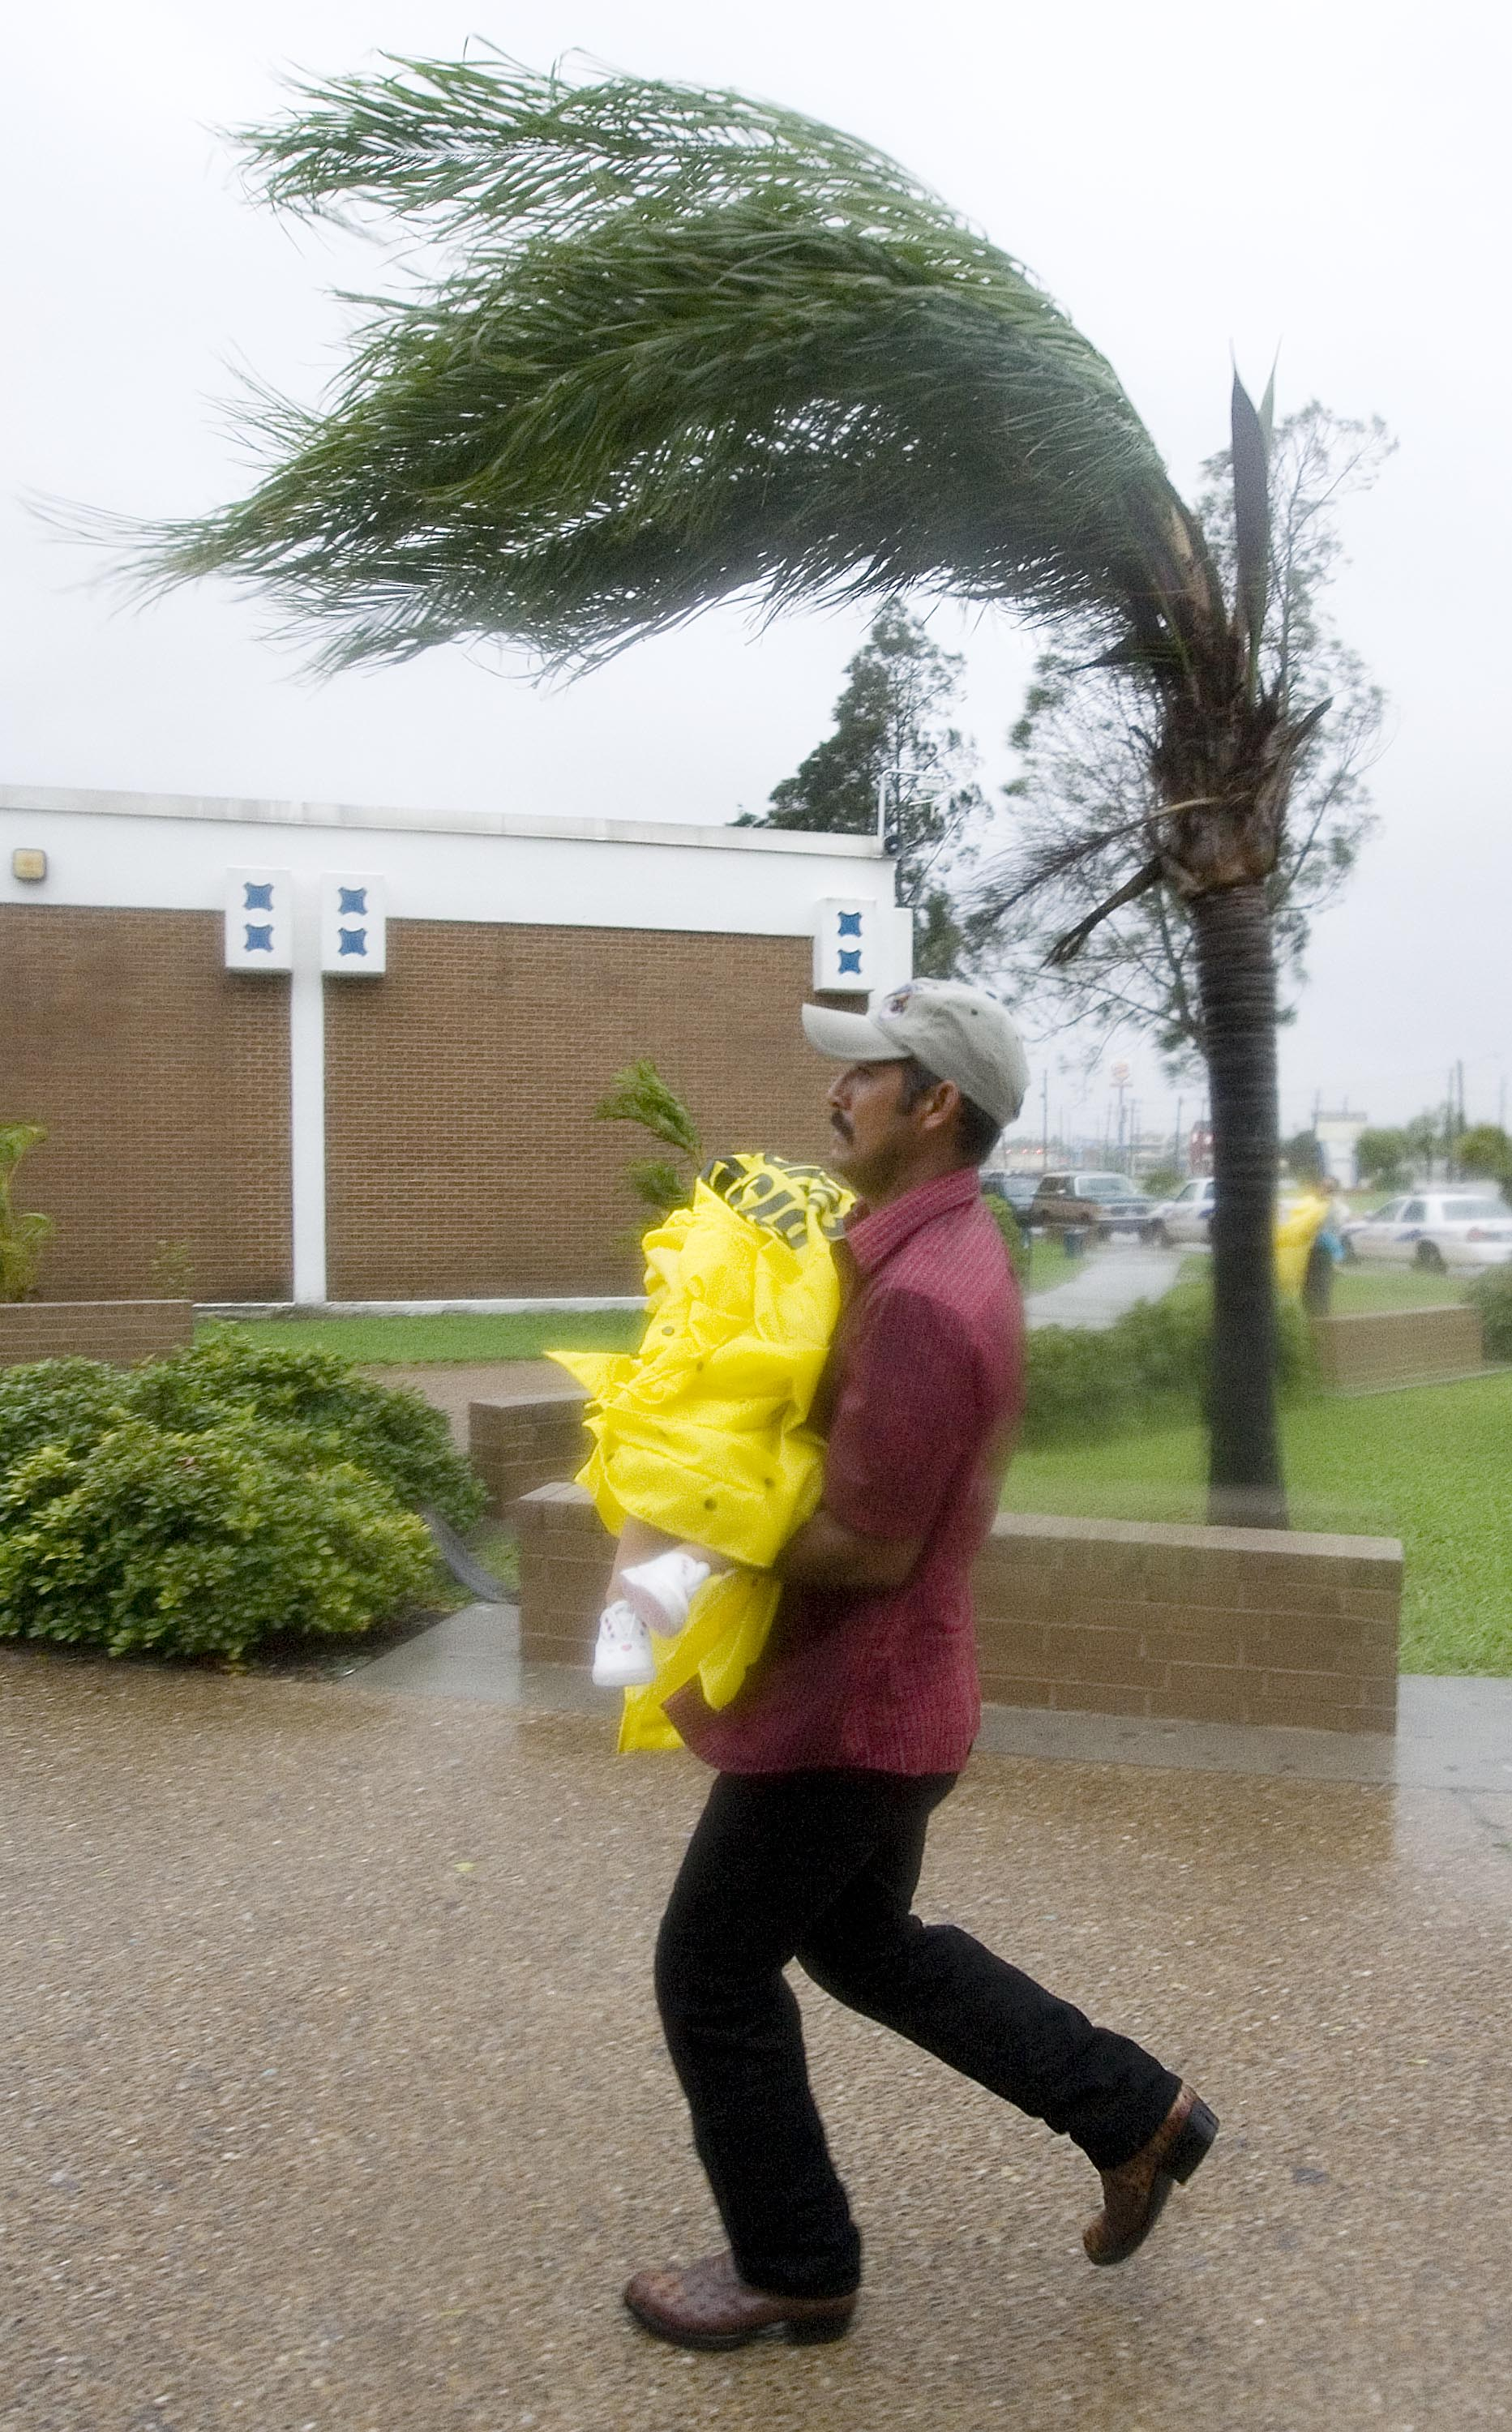 Evacuee runs with his bundled up daughter to a shelter.